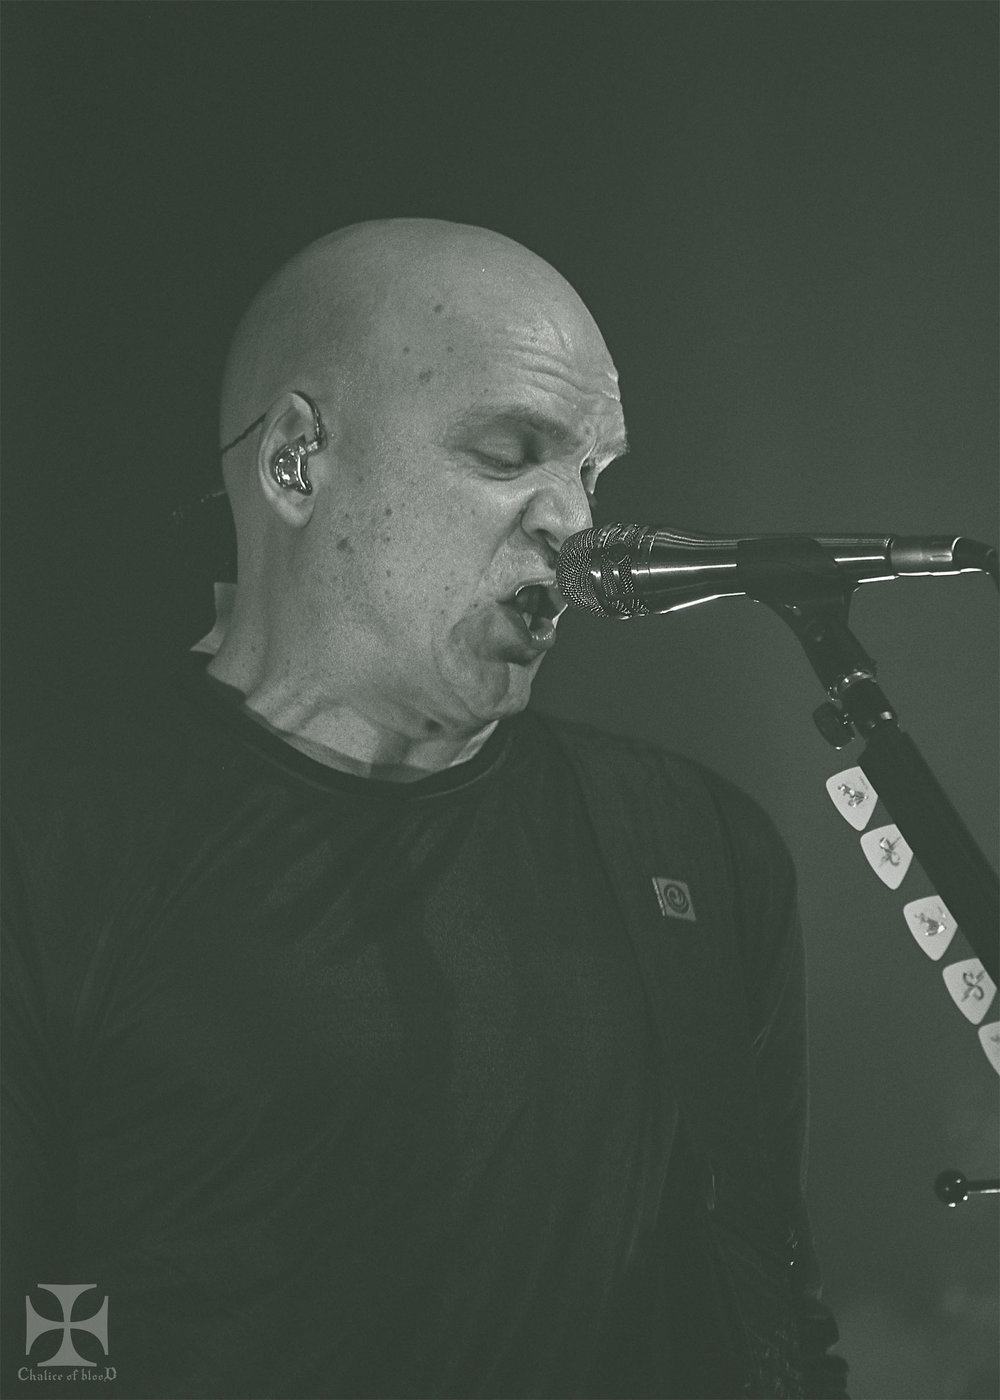 2017.05-Devin-Townsend---159-Exposure-watermarked.jpg